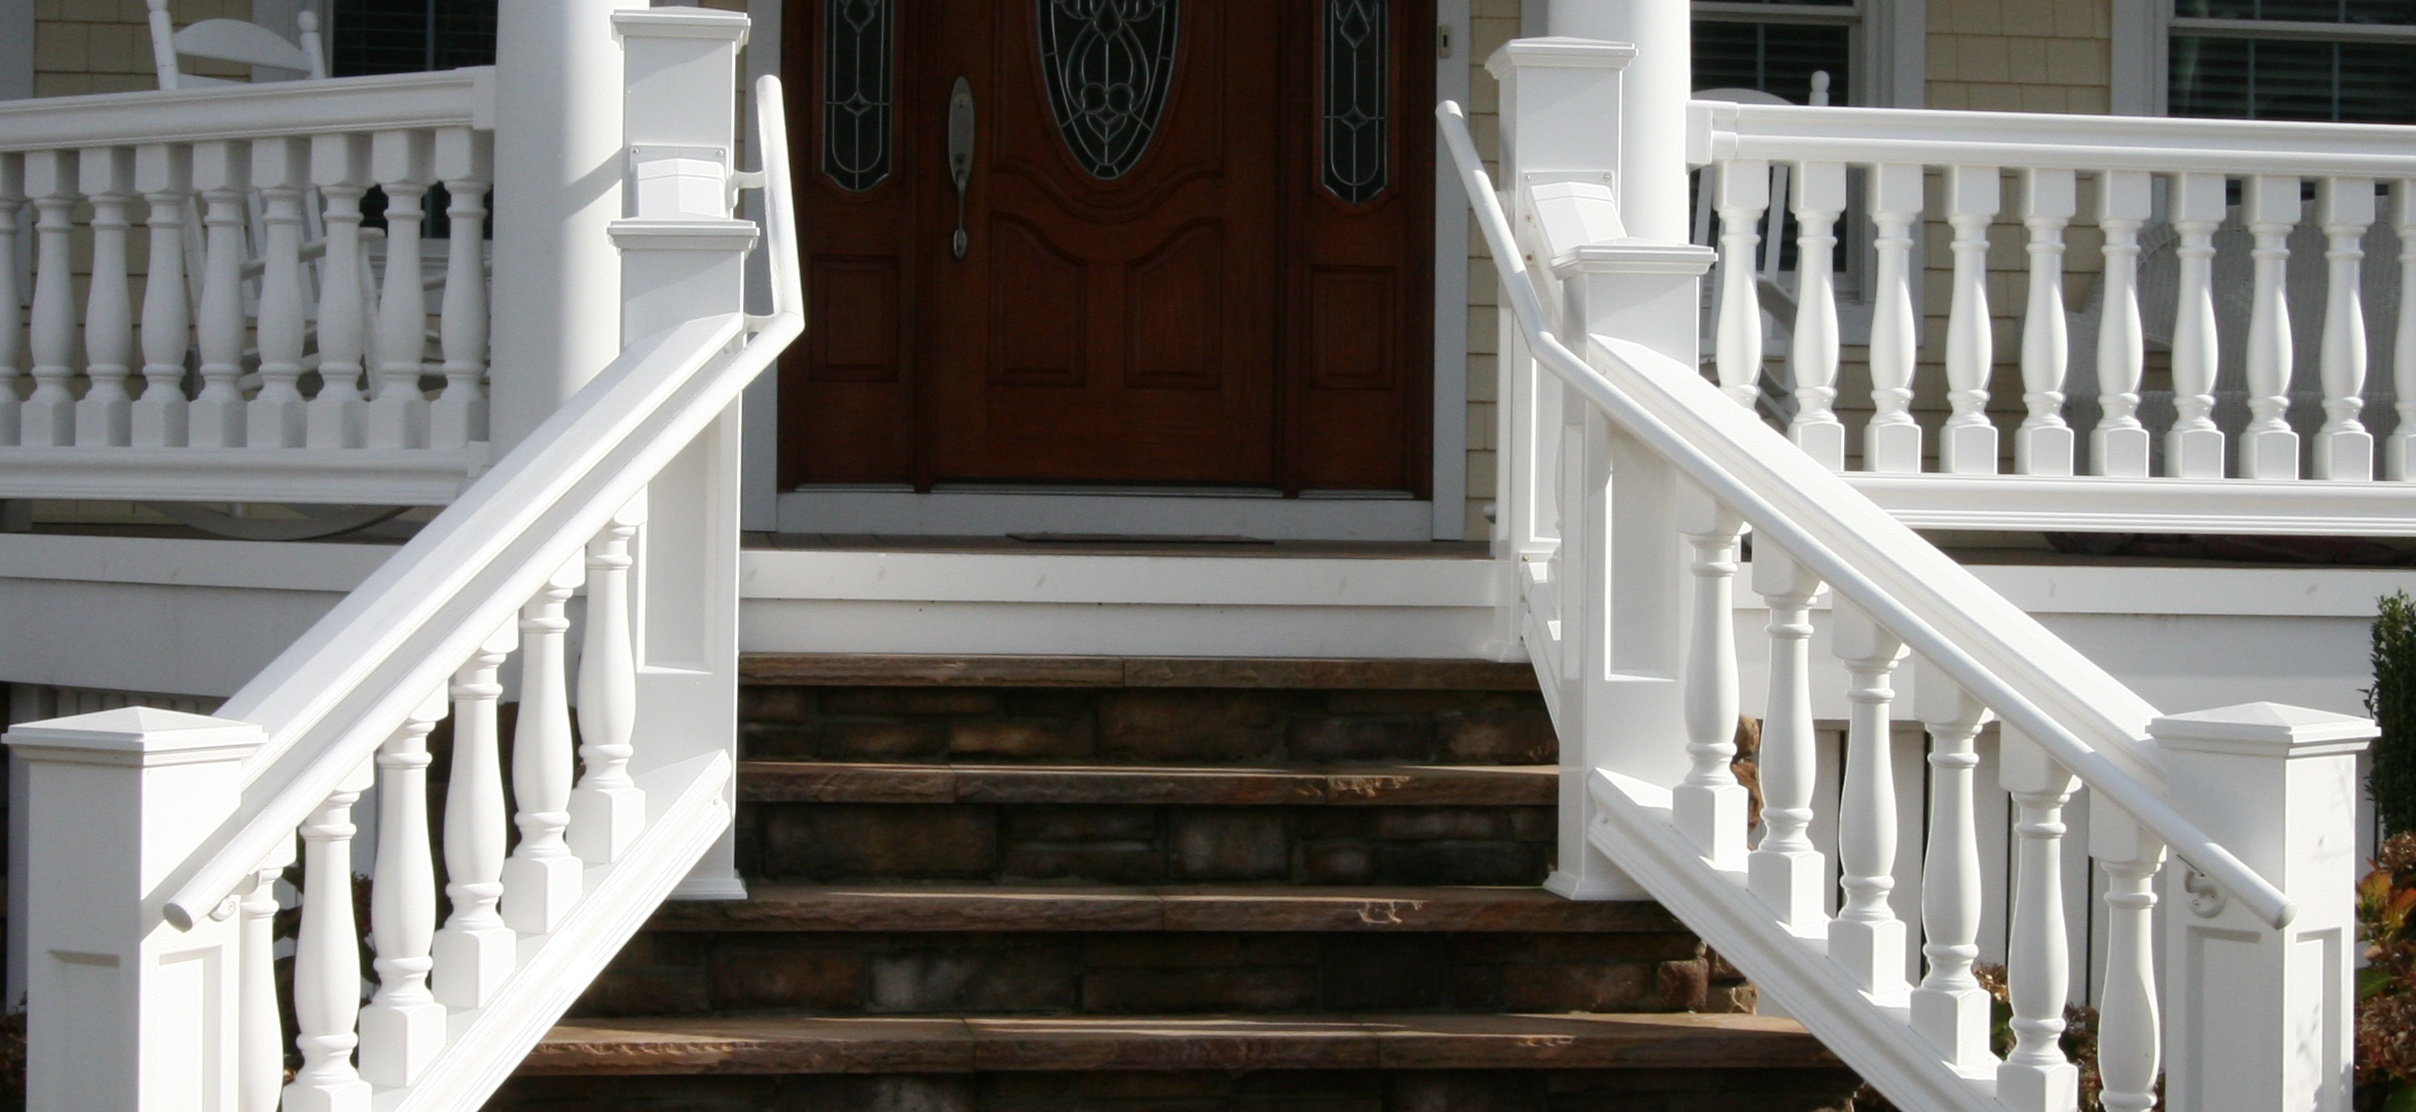 What's the Difference Between Handrail and Guardrail?